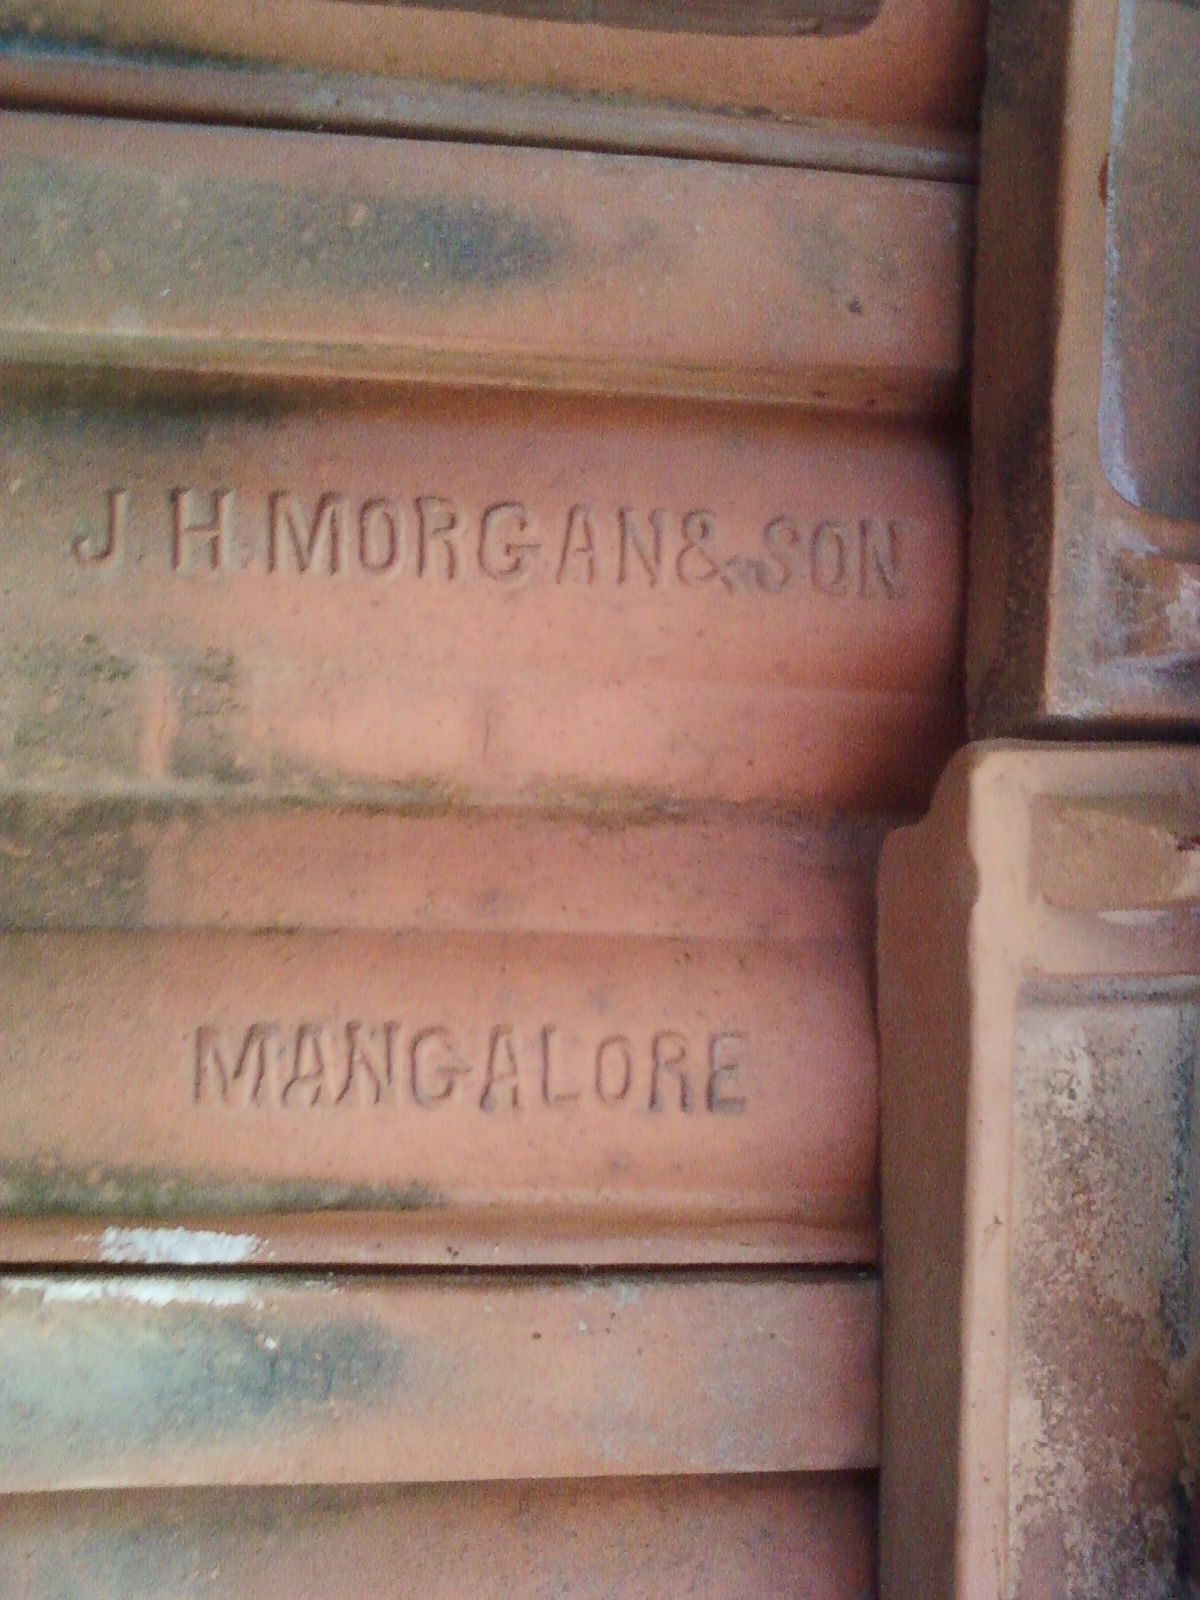 file thayyil tharavadu roof tile manufactured by j h morgan